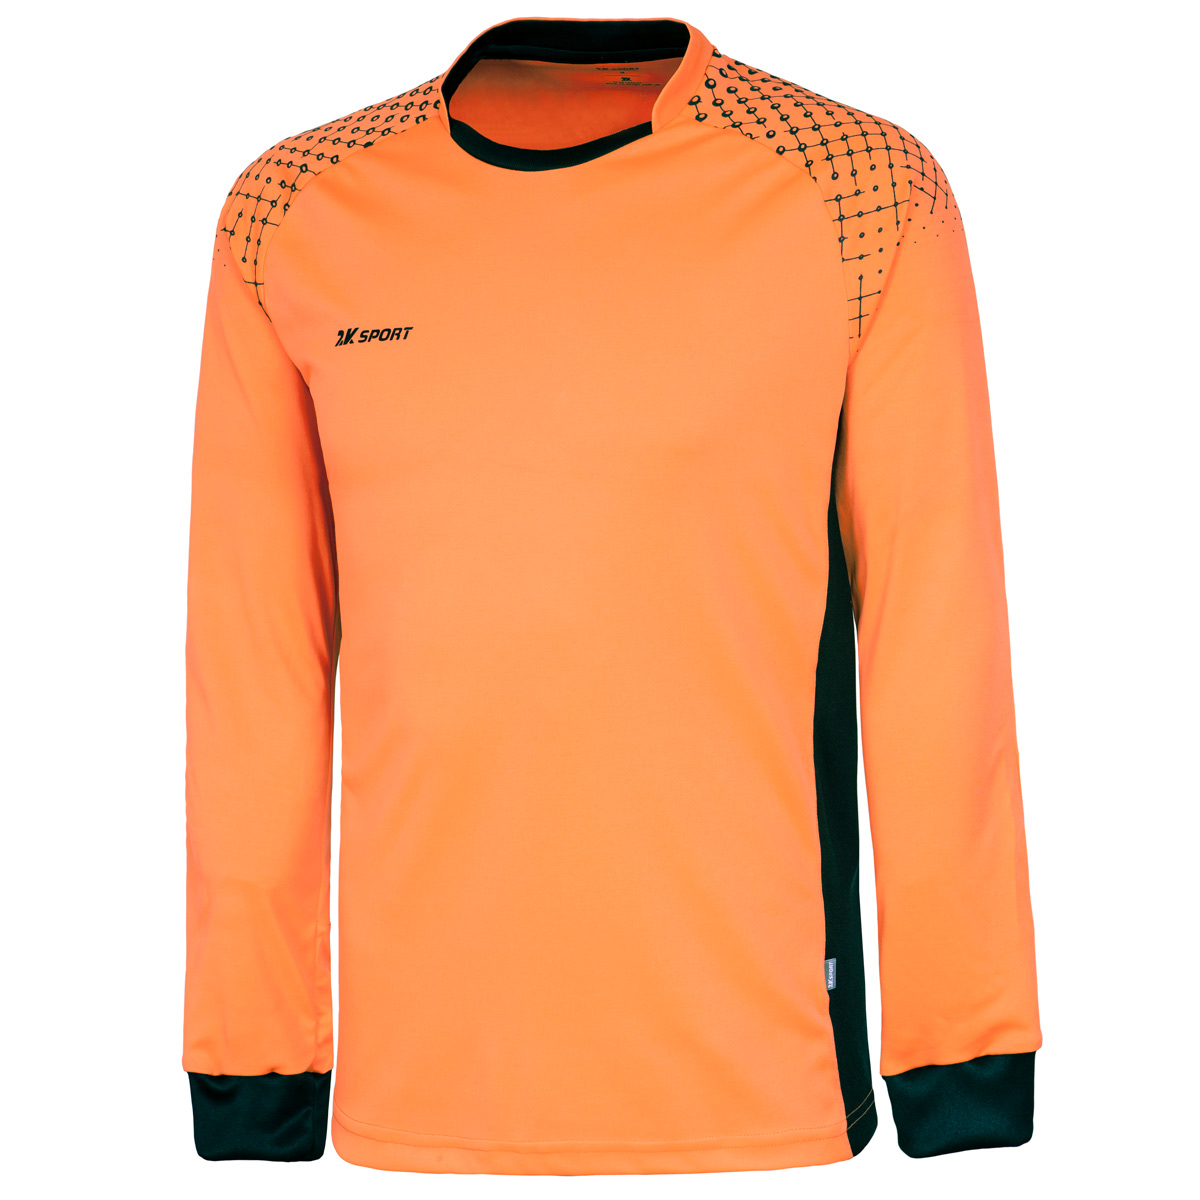 2K SPORT KEEPER NEON-ORANGE/BLACK